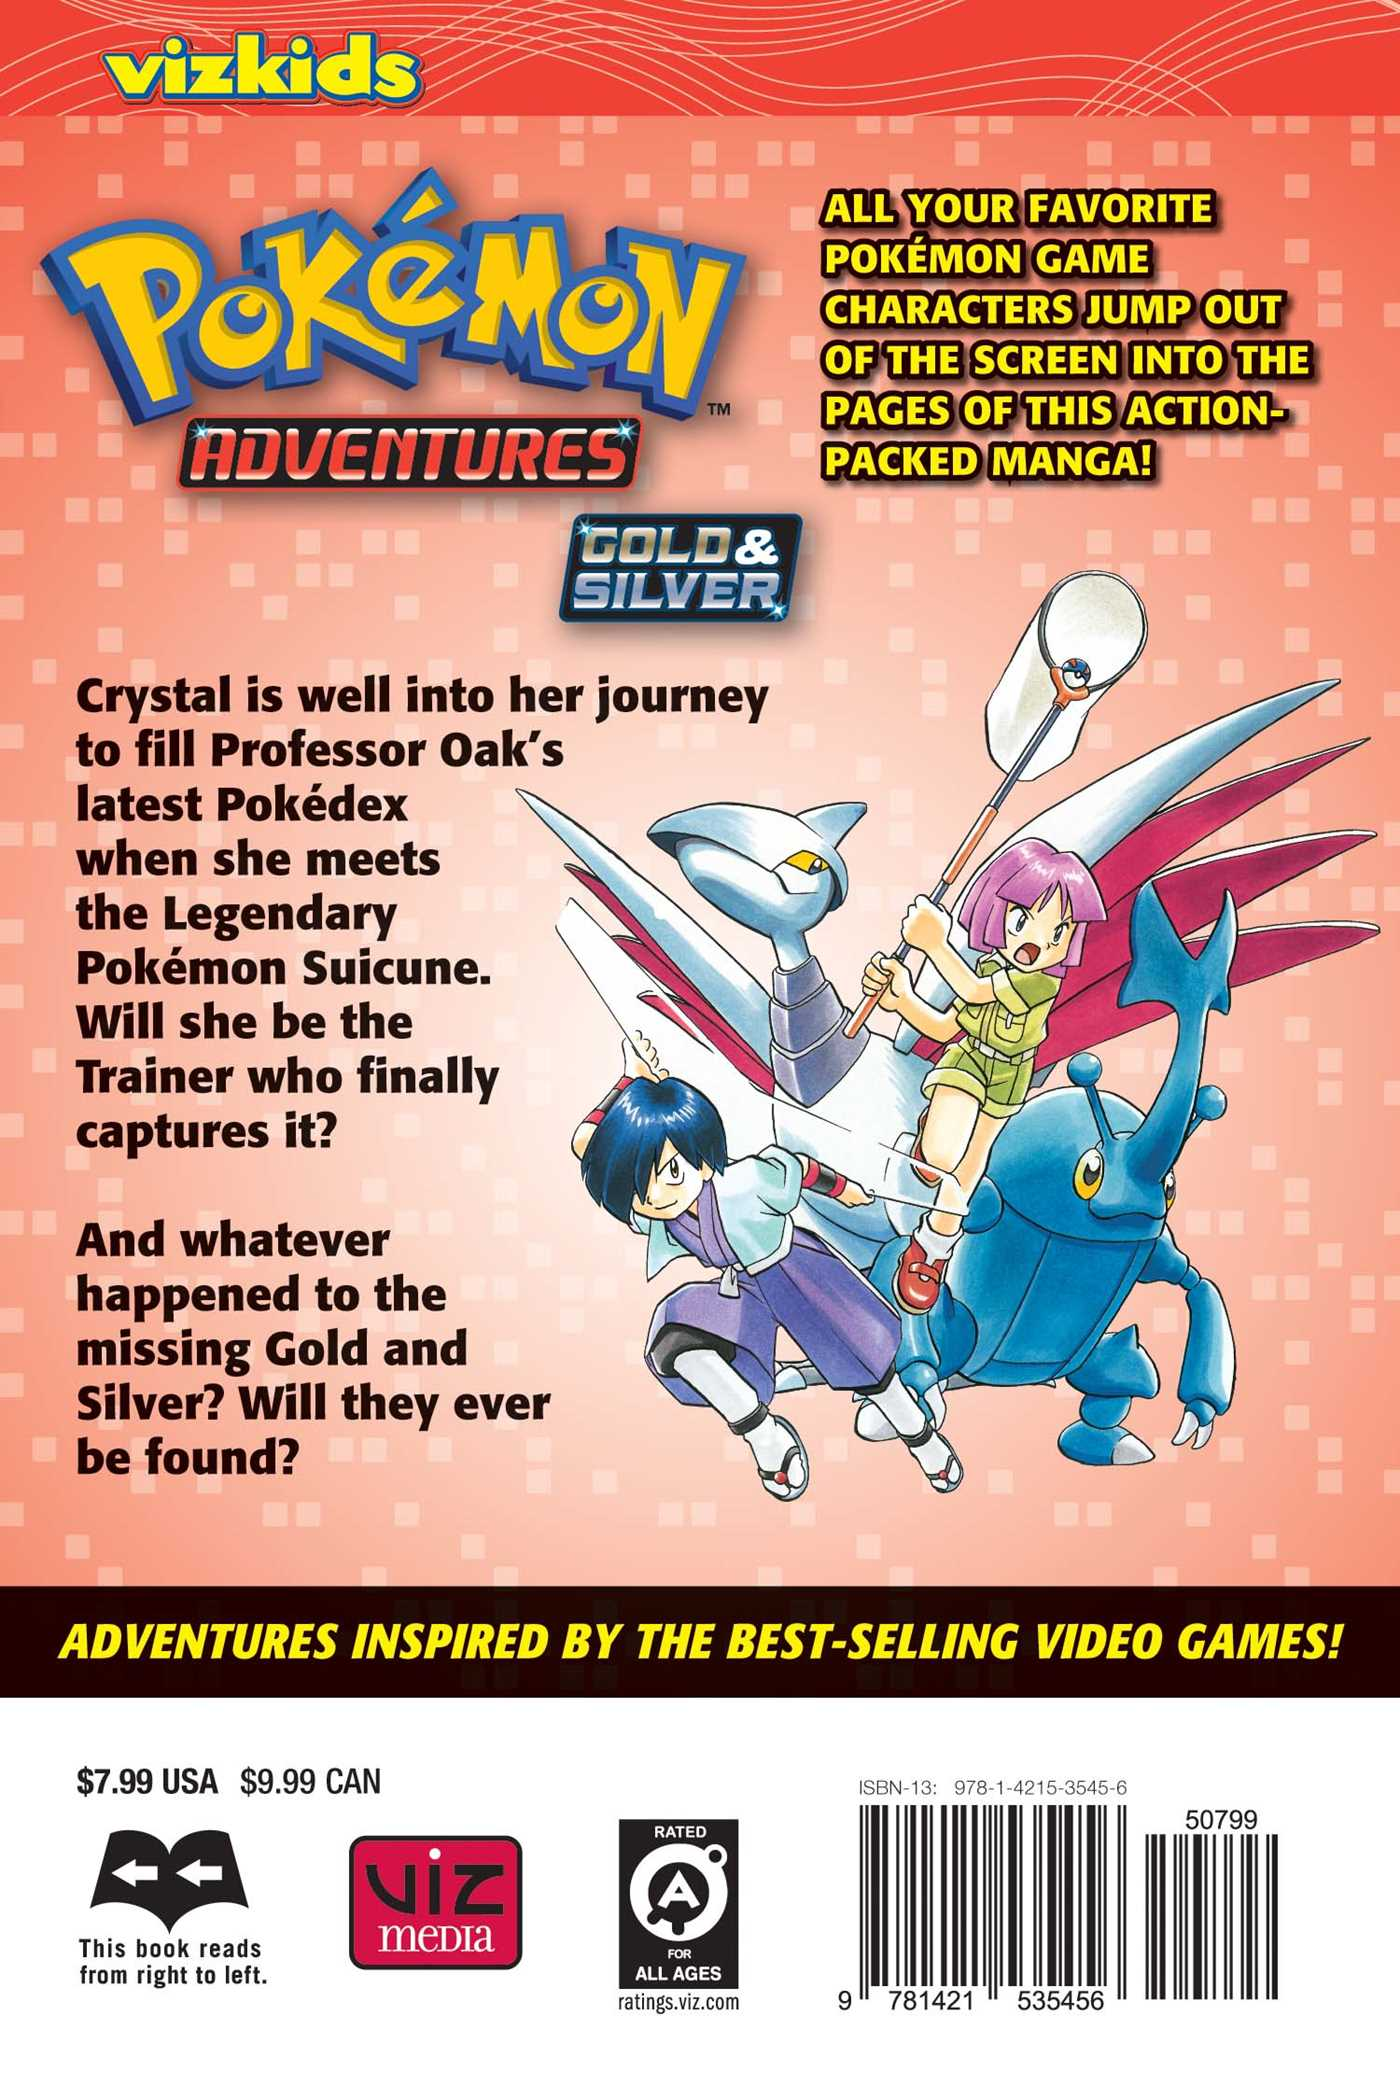 Pokemon adventures vol 11 9781421535456 hr back